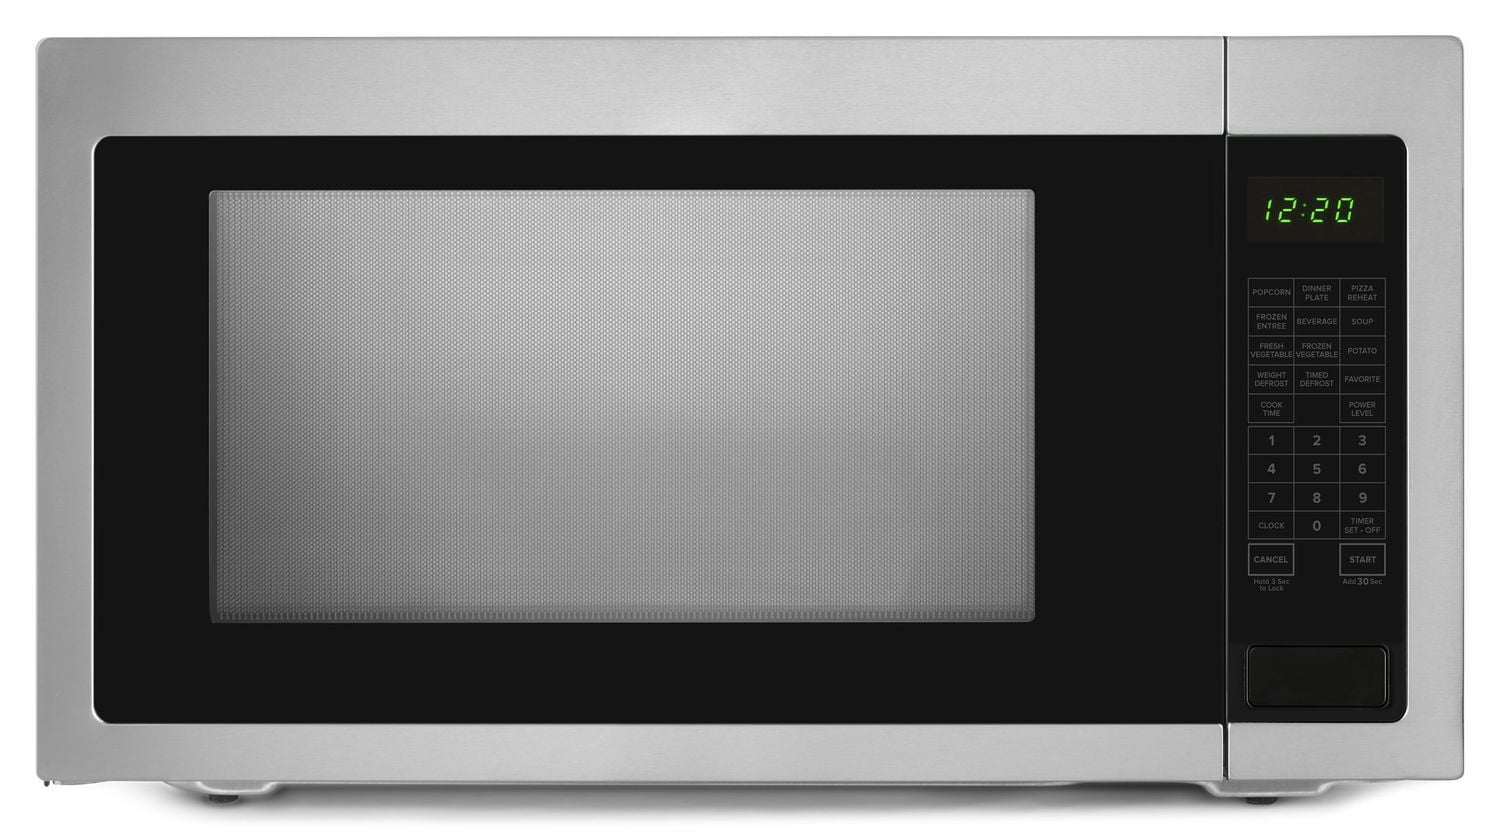 Load image into Gallery viewer, Amana AMC4322GS 2.2 Cu. Ft. Countertop Microwave With Add :30 Seconds Option Black-On-Stainless